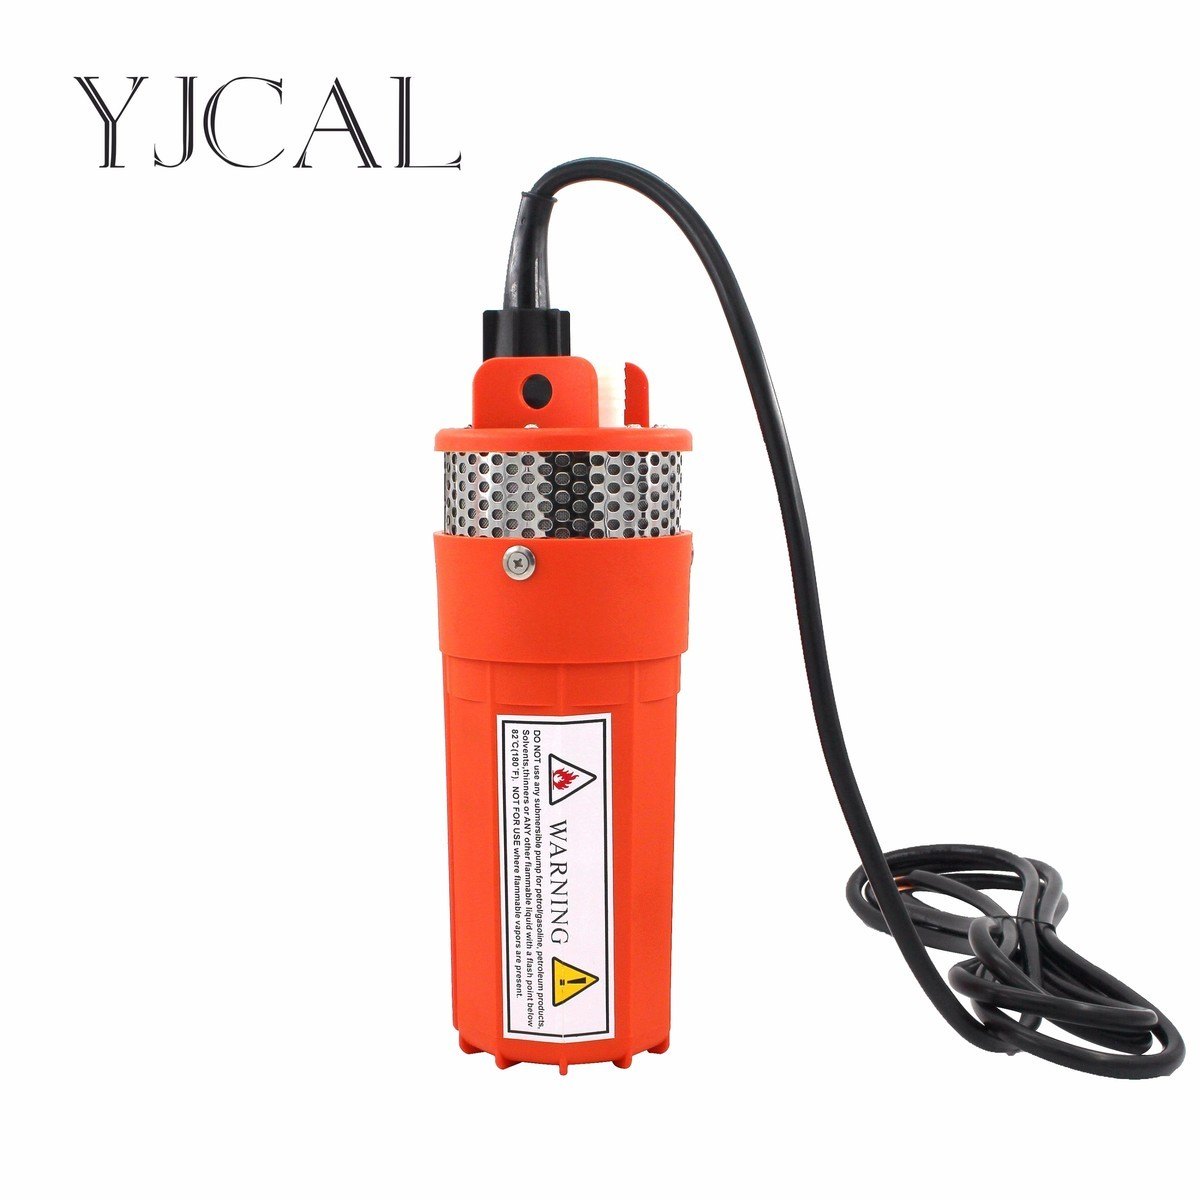 DC12/24V Submersible Solar Water Pump 70M Lift Small Power  For Outdoor Garden Fountain Deep Well Aquarium Aquario 6162 63 1015 sa6d170e 6d170 engine water pump for komatsu